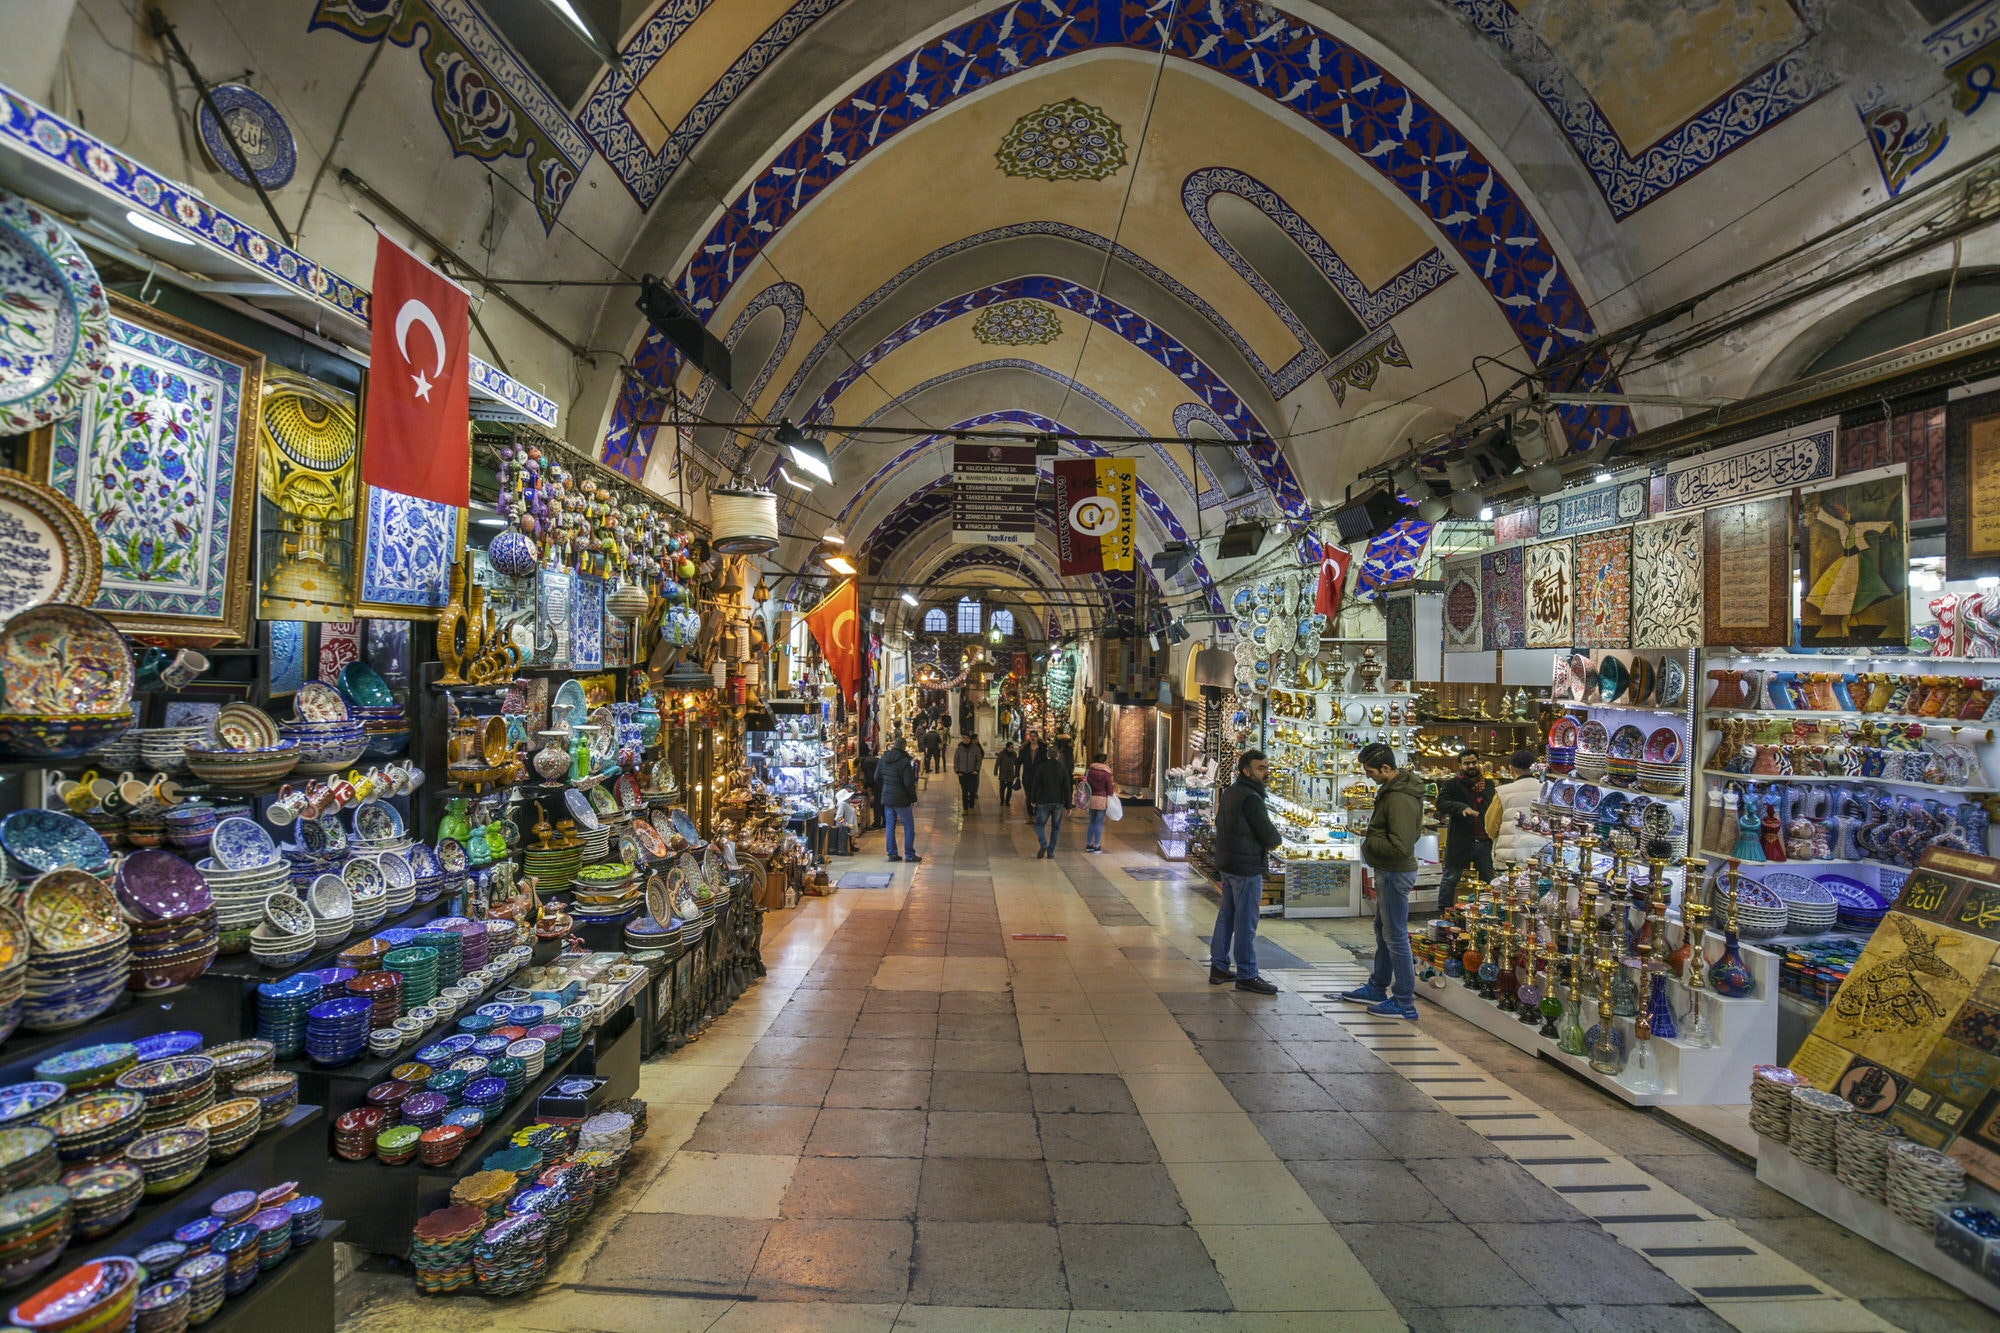 Interior of the Grand Bazaar in Istanbul with colourful produce on display